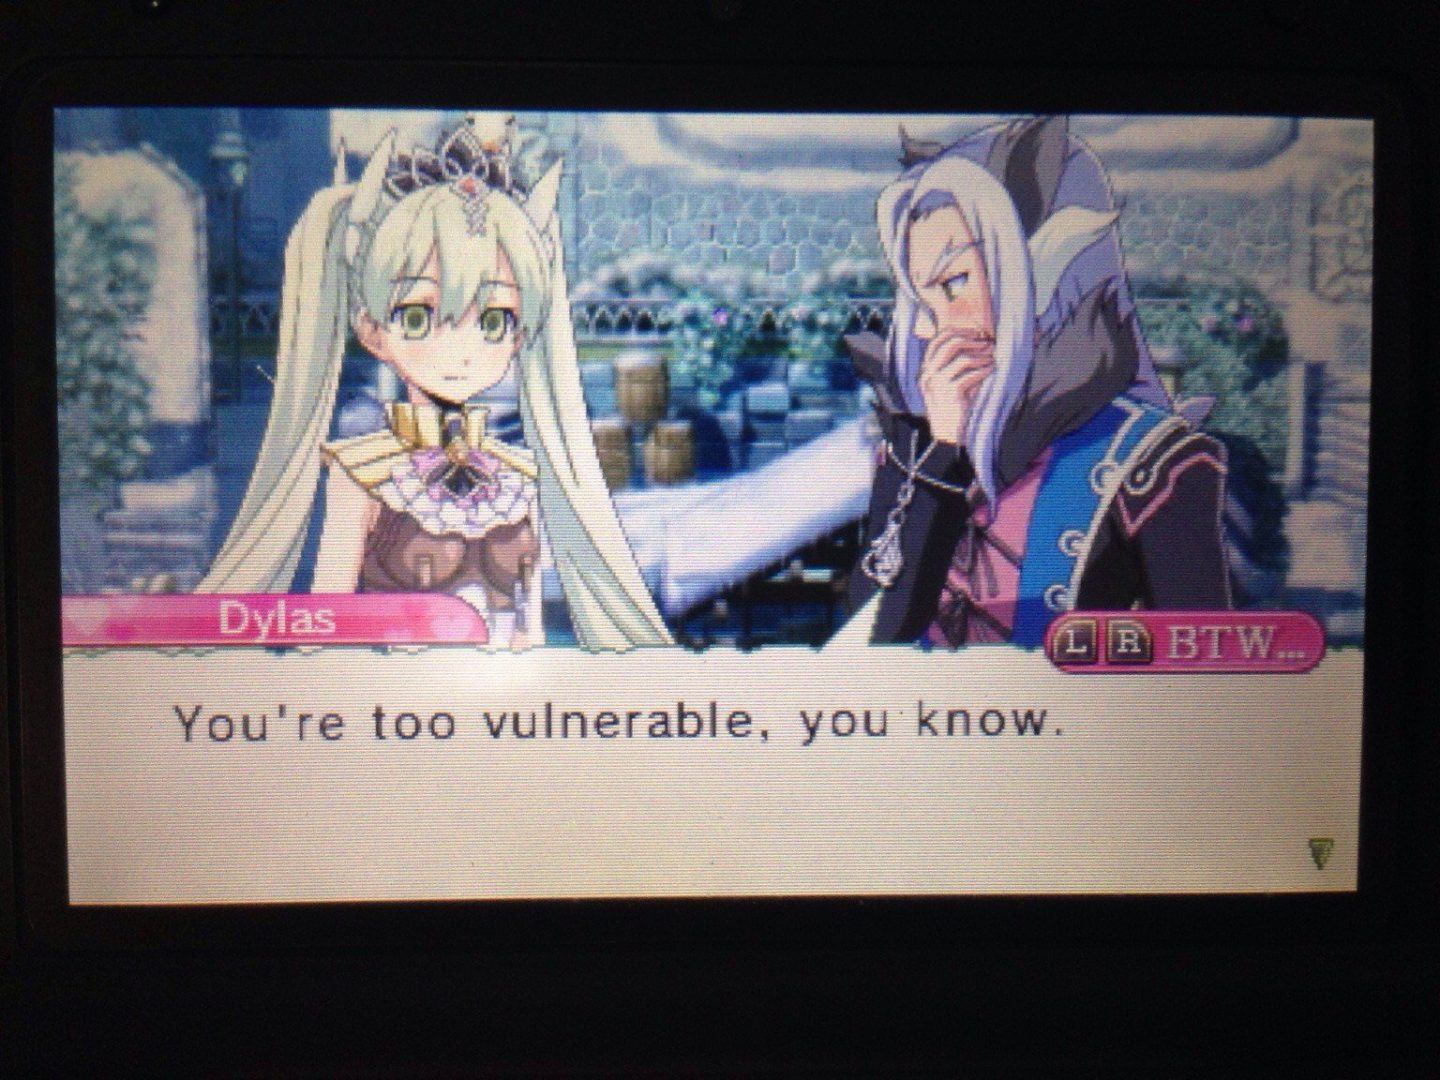 Dating Dylas in Rune Factory 4